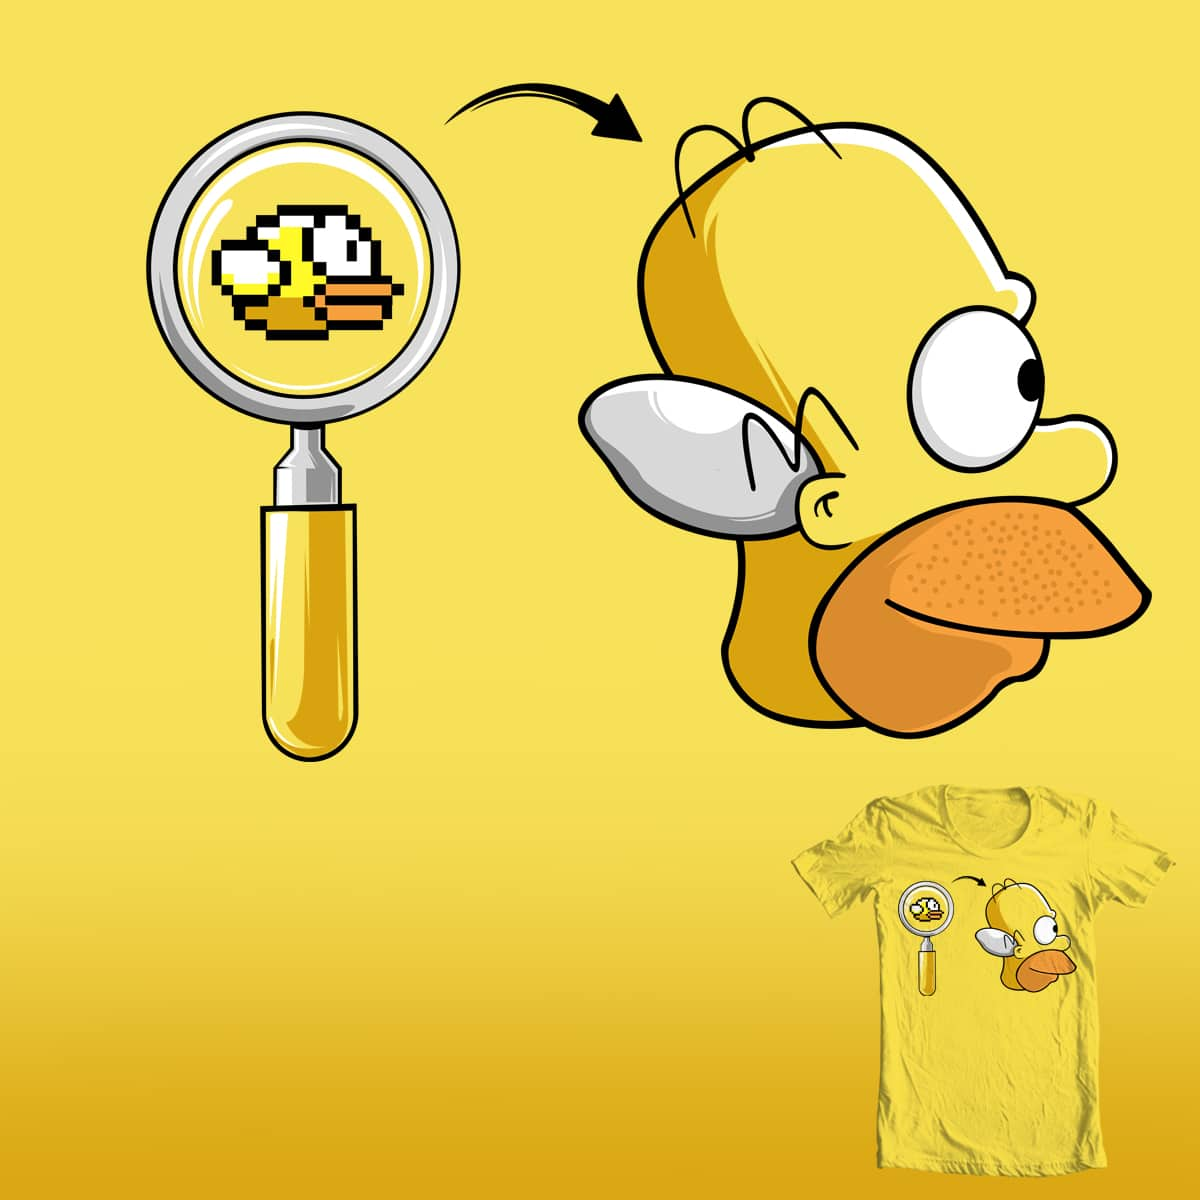 its HOMER! by mhiko23 on Threadless